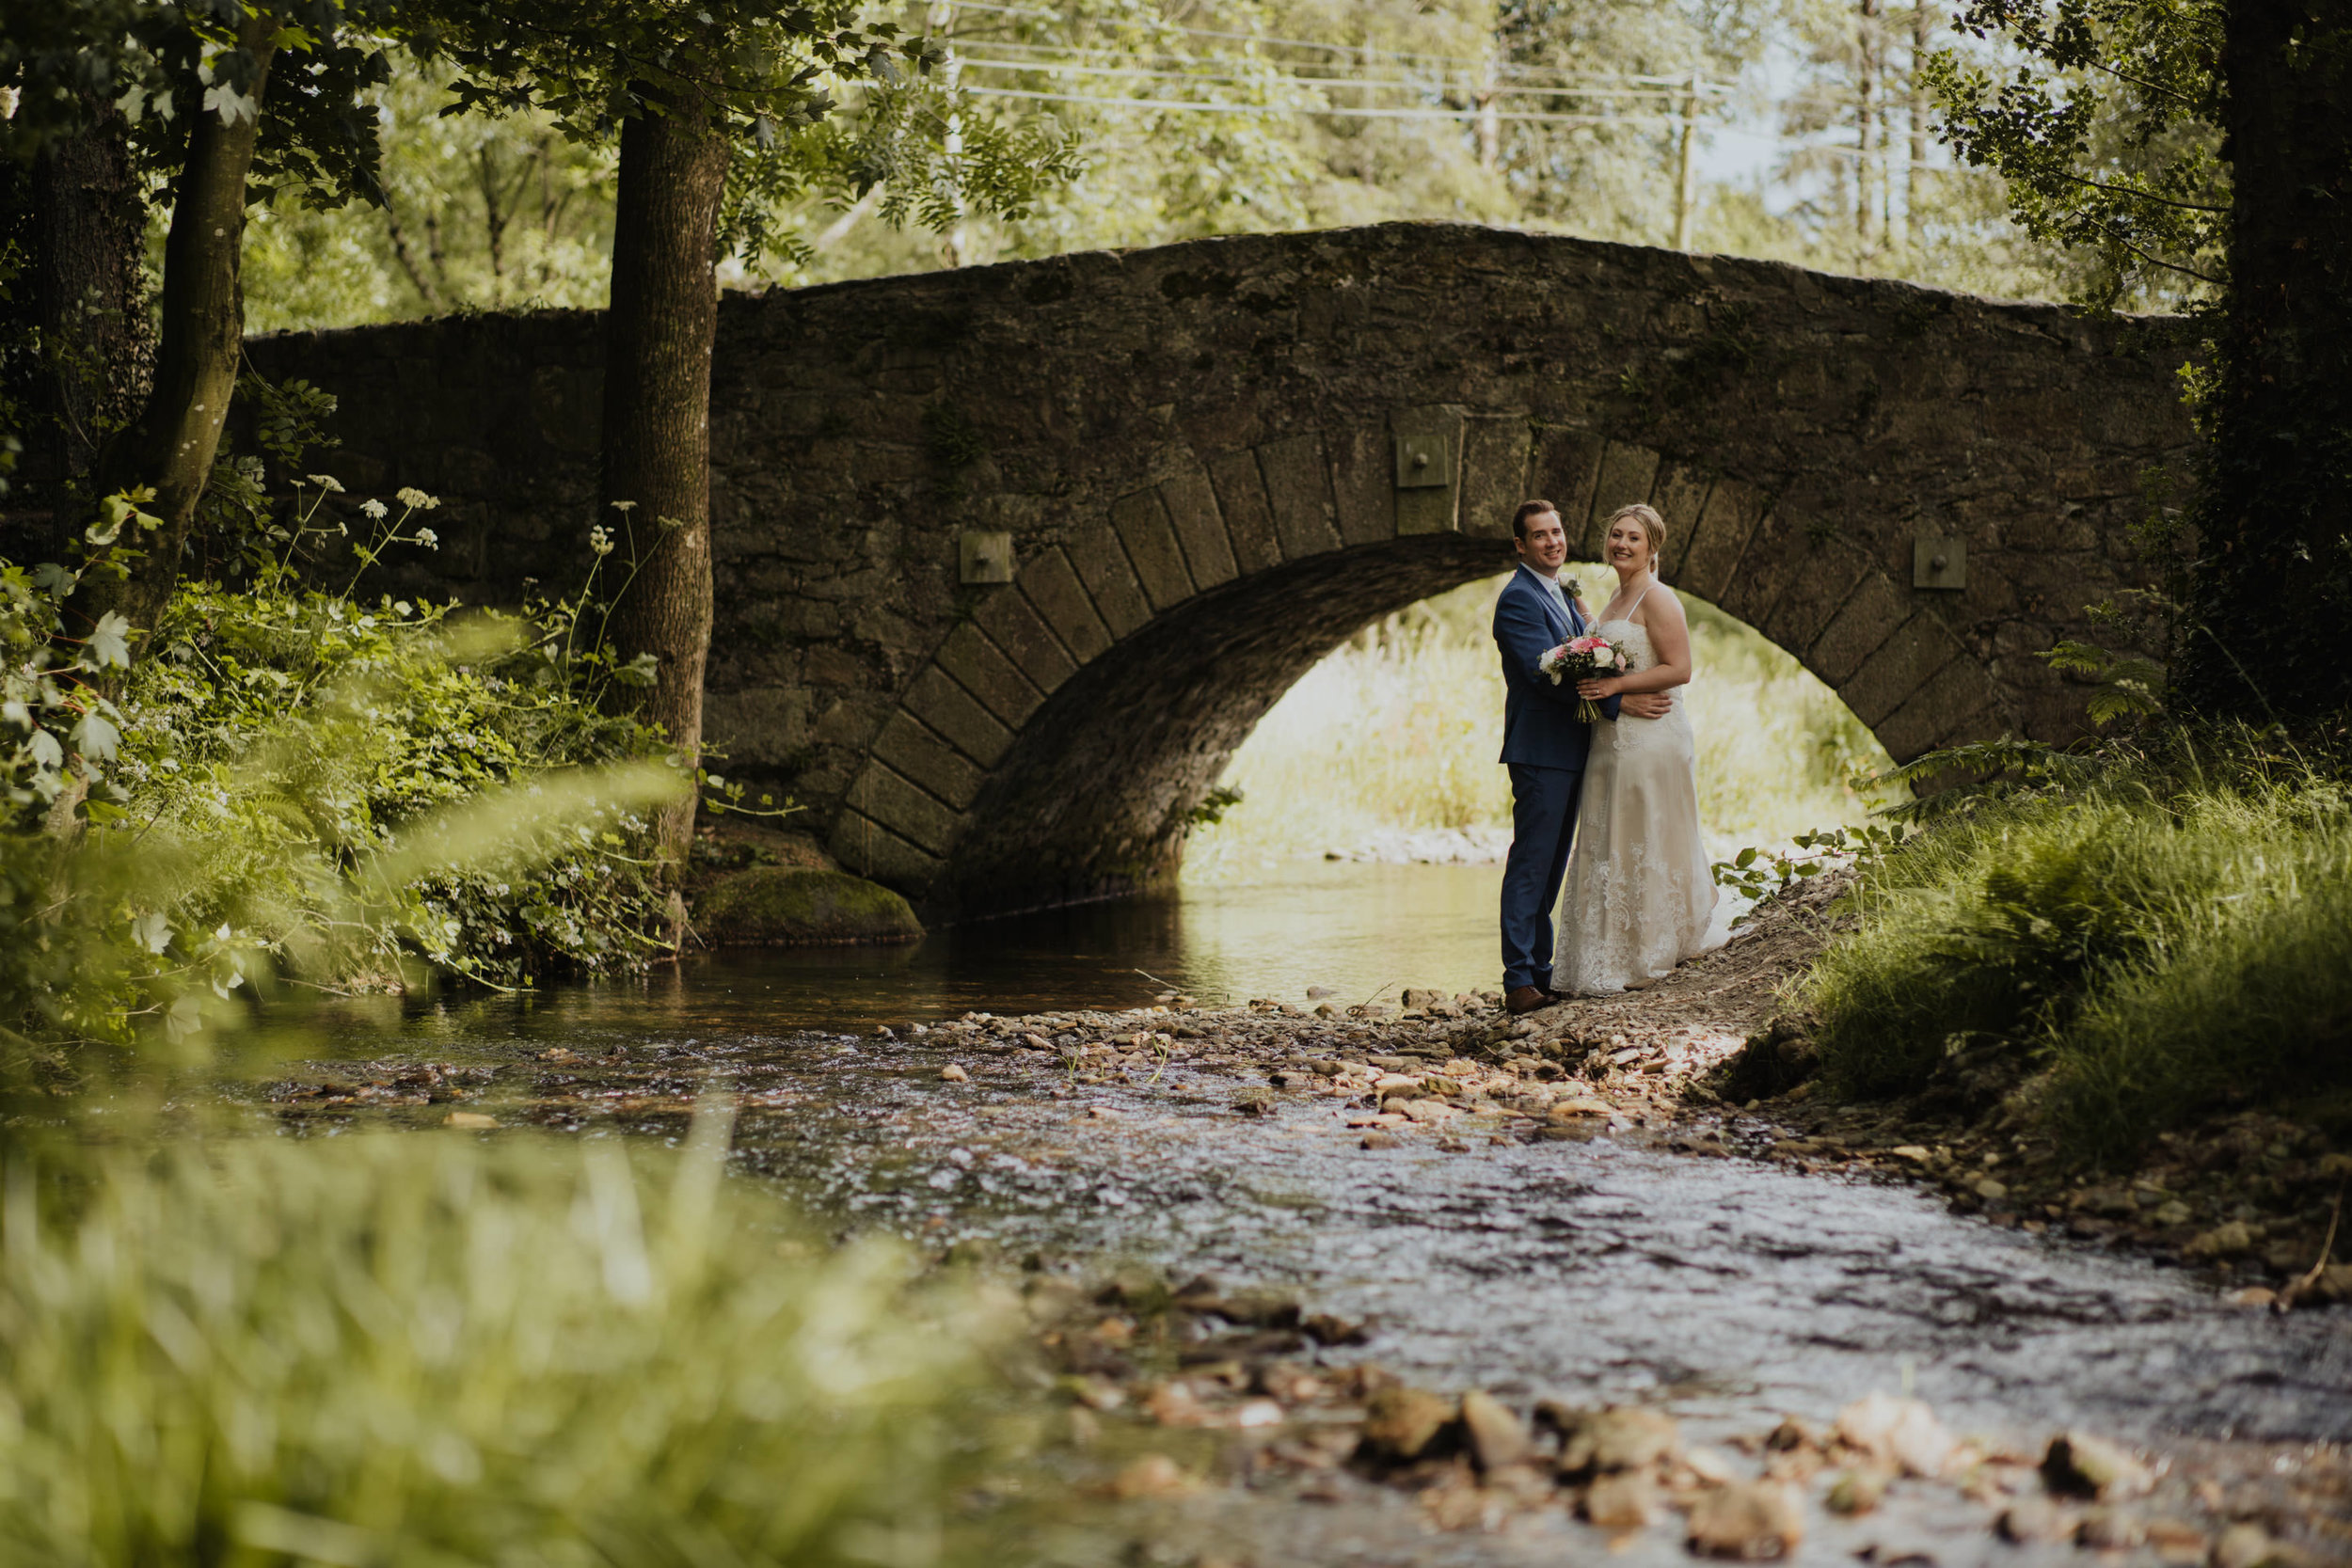 s&a_brooklodge_wedding_photographer_livia_figueiredo_25.jpg